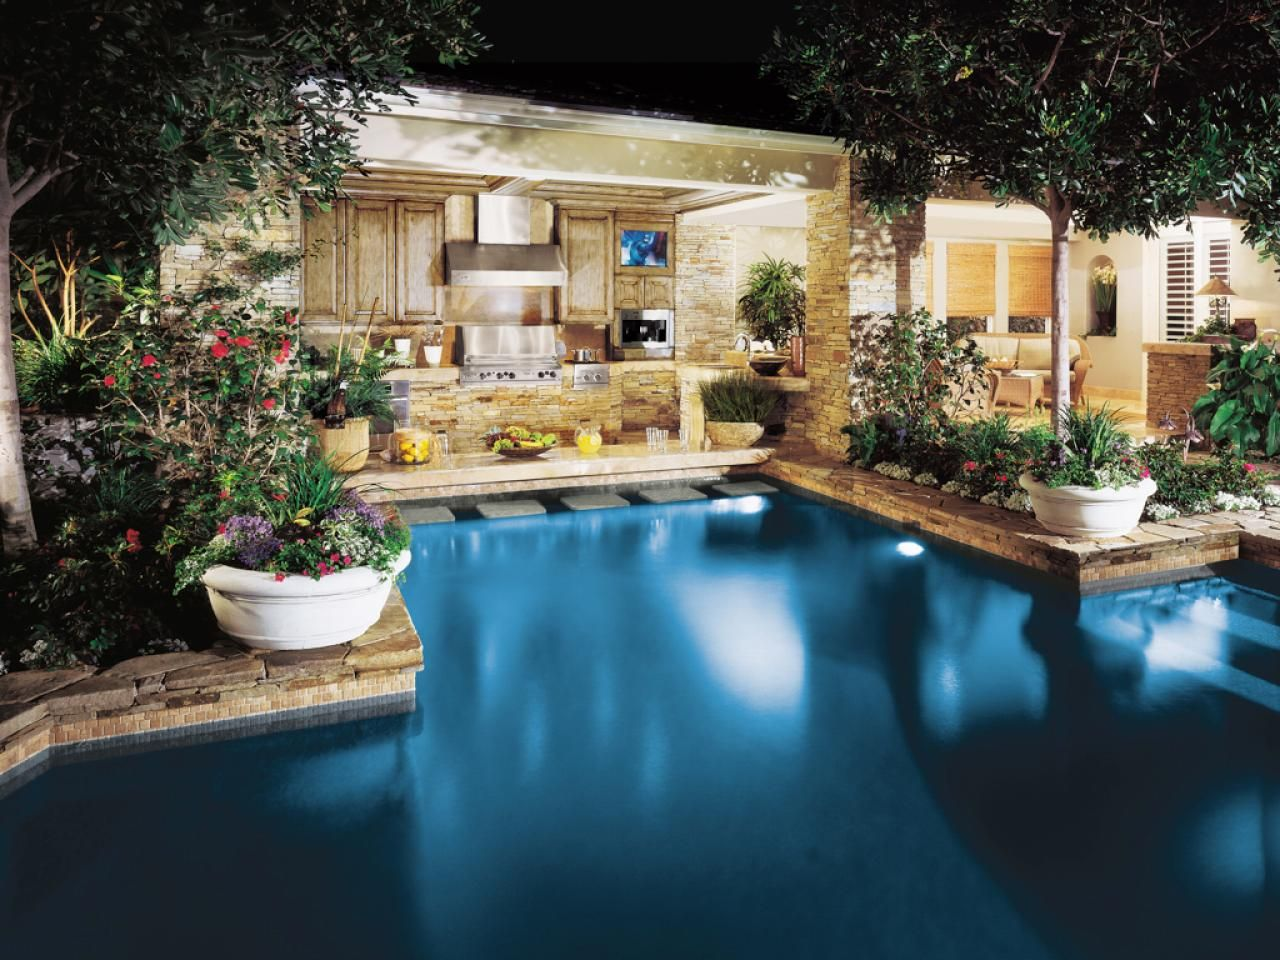 Outdoor Kitchen Ideas | Kitchens, Backyard and Outdoor living